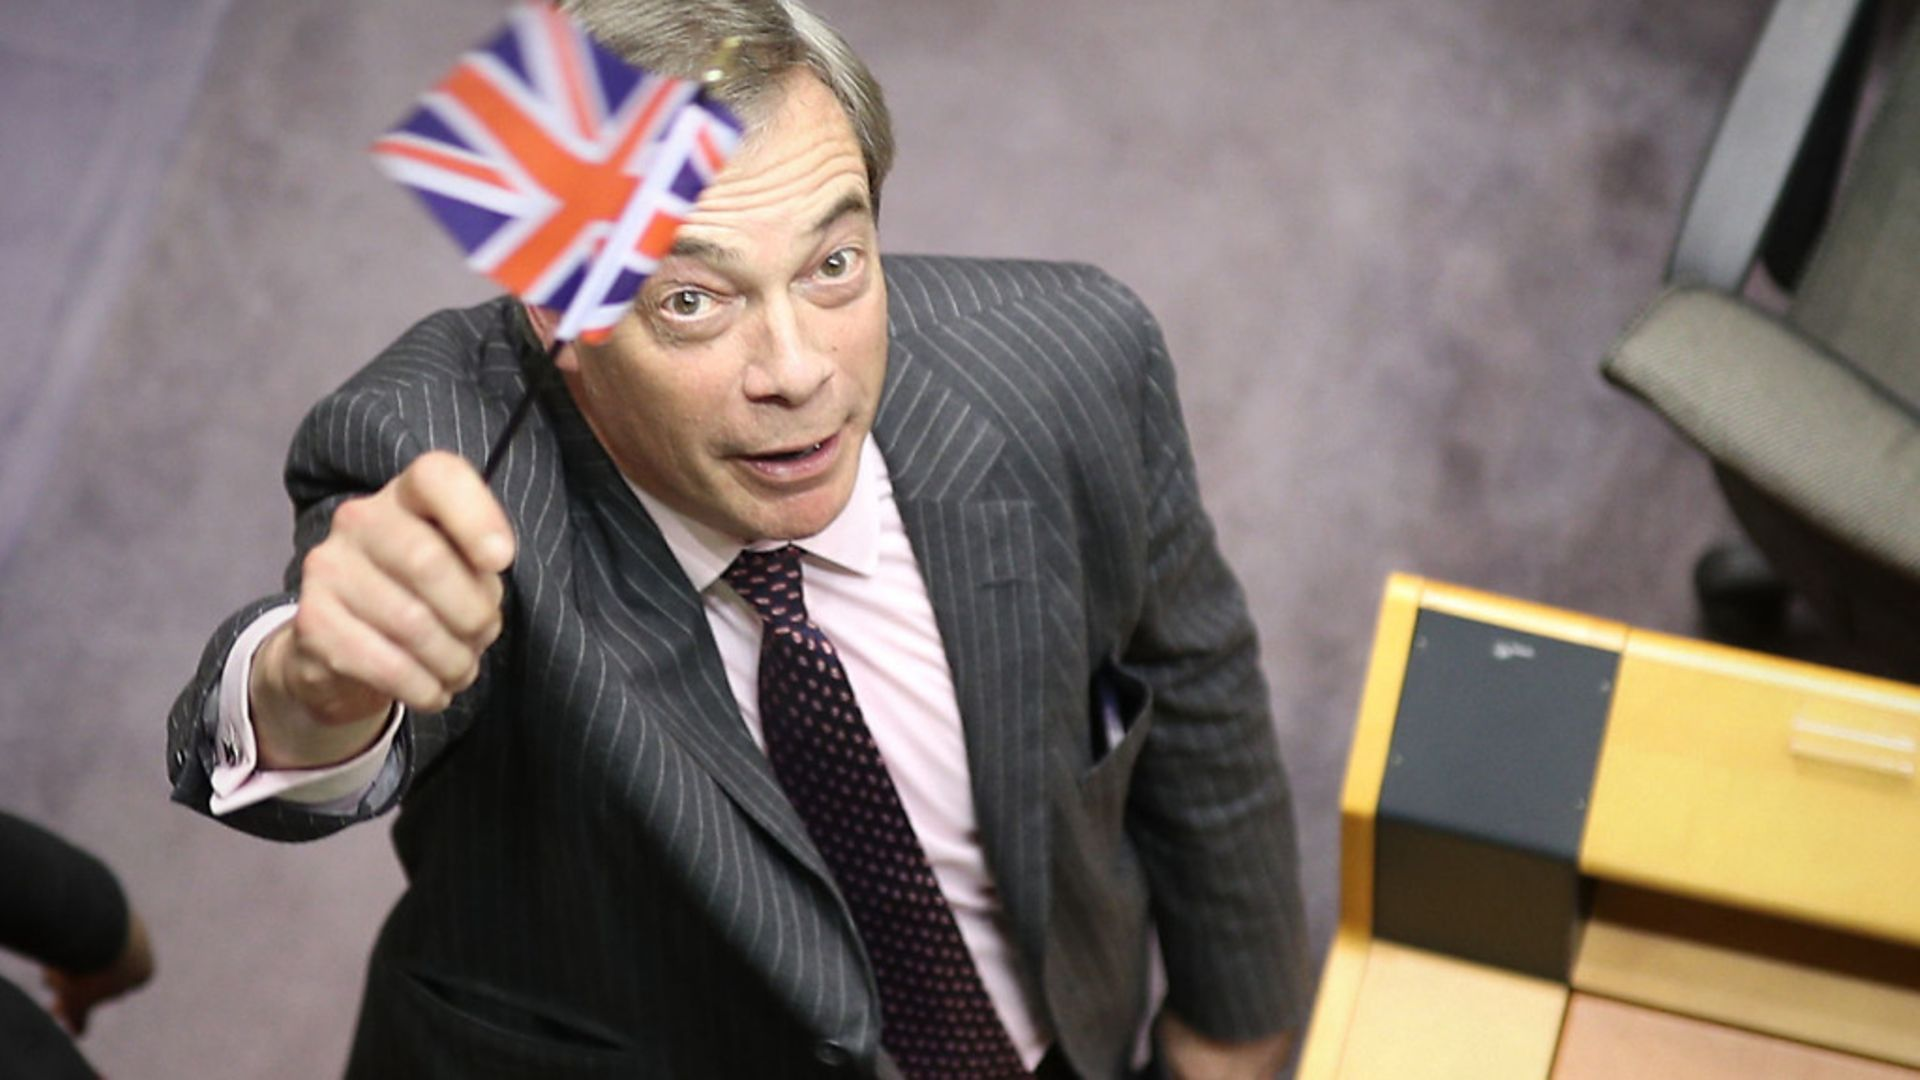 Nigel Farage in the parliament chamber at the European Parliament in Brussels. - Credit: PA